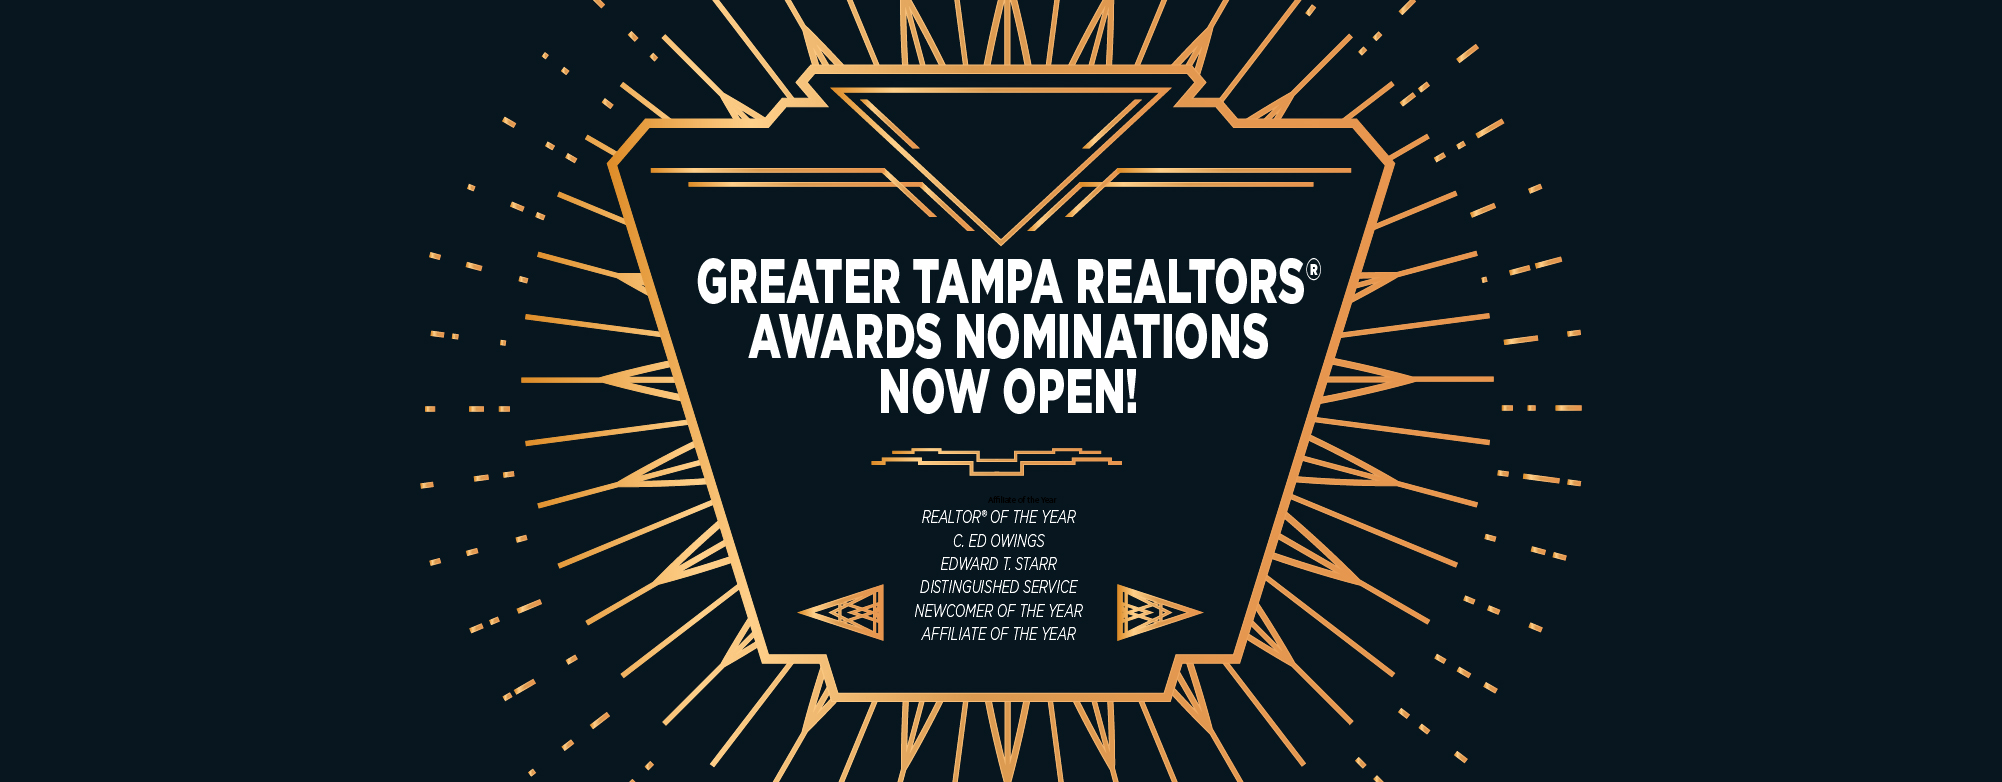 Greater Tampa Realtors Awards Nomination Now Open! Awards available for Realtor of the Year, C ED Owings Edward T Starr, Distinguished Service, Newcomer of the Year, and Affiliate of the Year!